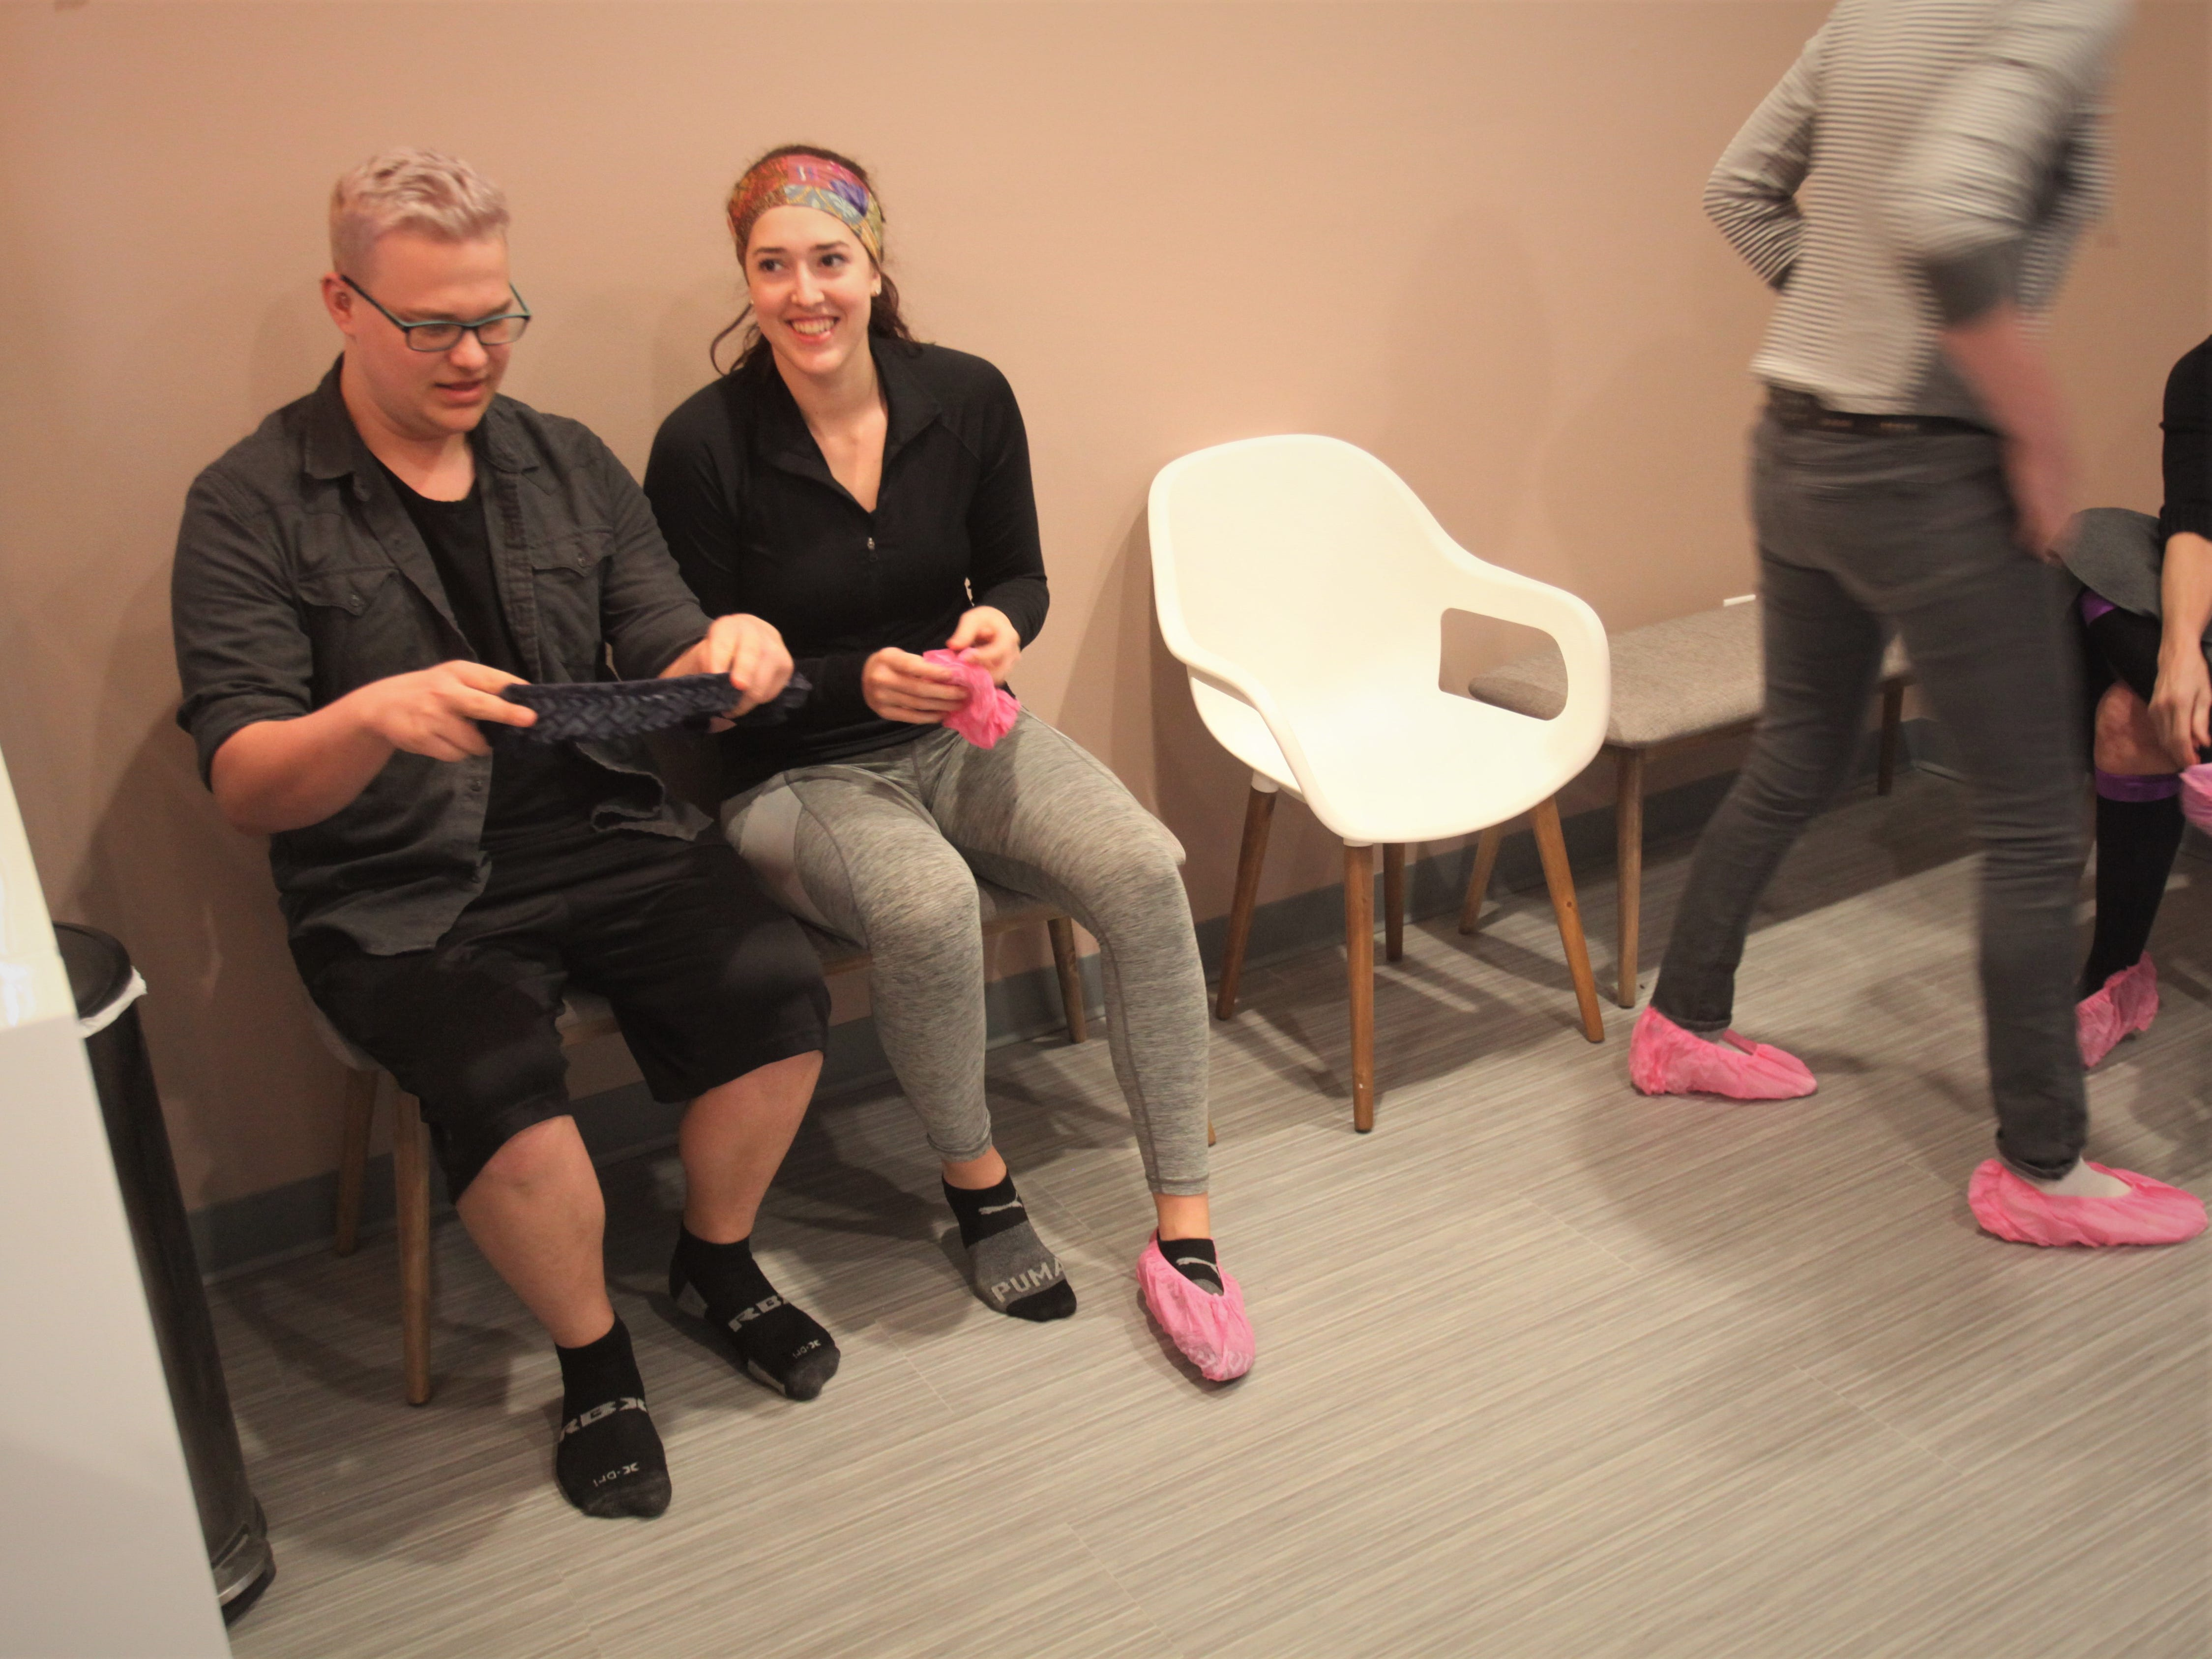 Mason Gold and Evangeline Leuchen put on booties over their socks before a salt therapy session.